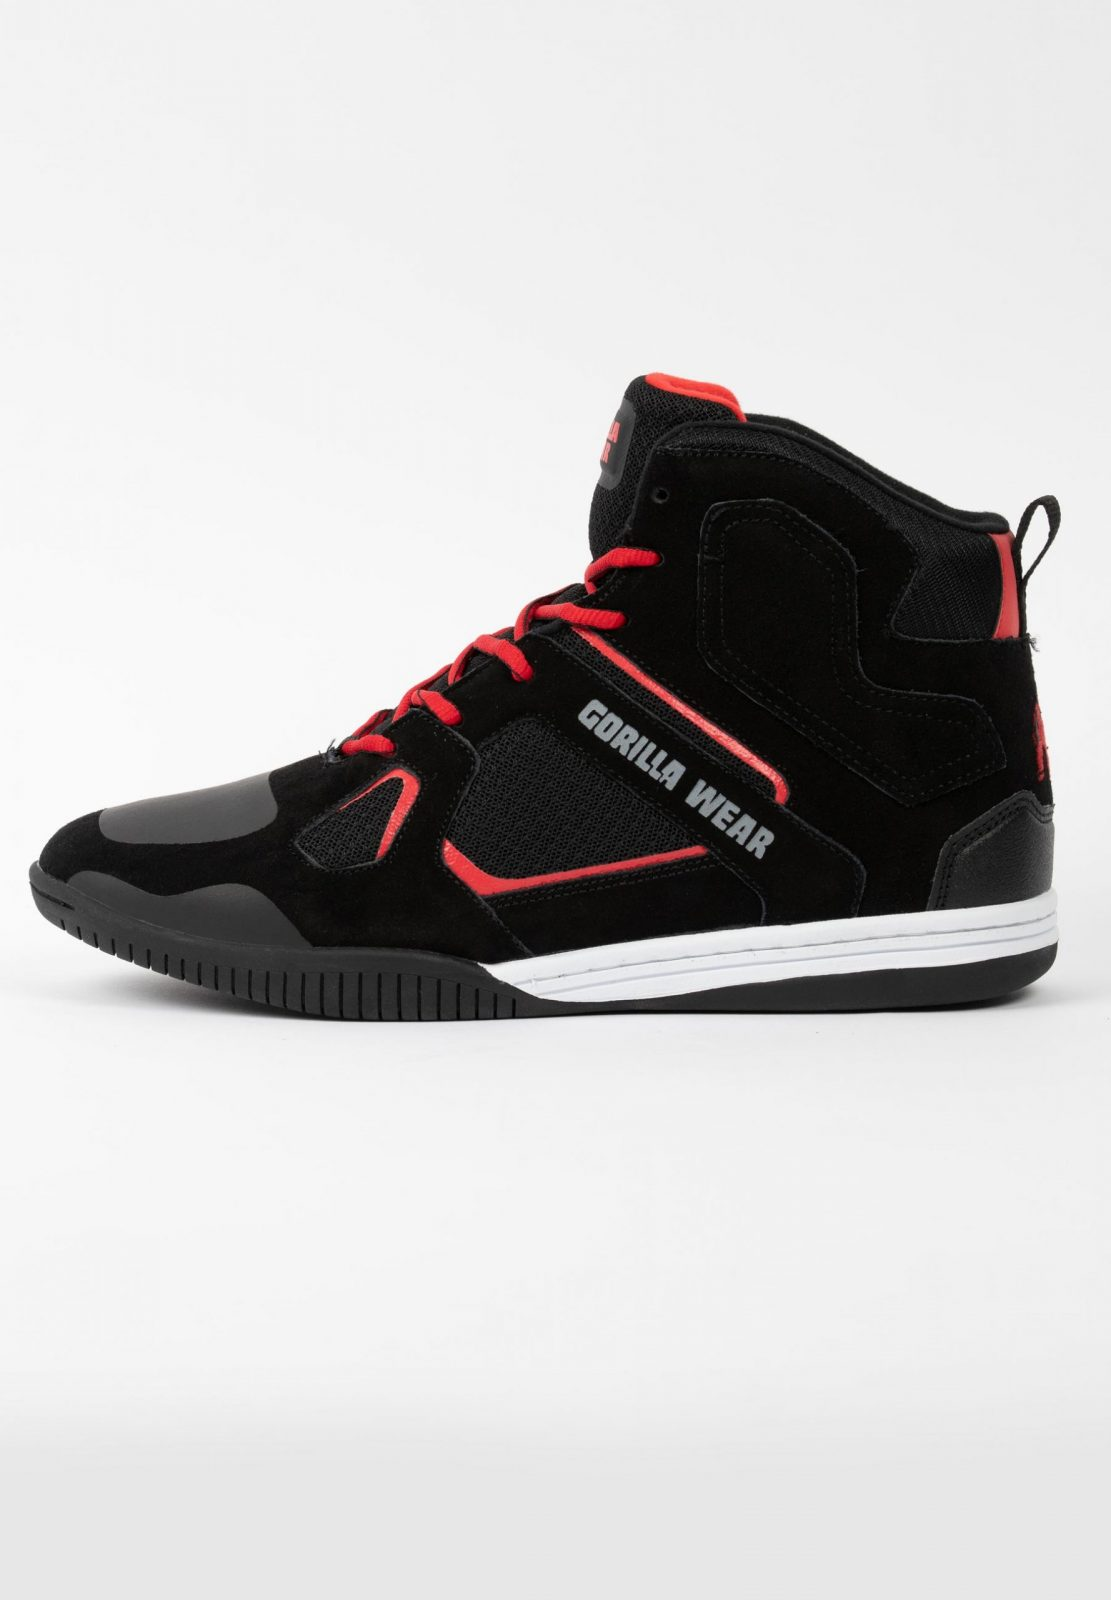 90009950-troy-high-tops-black-red-11